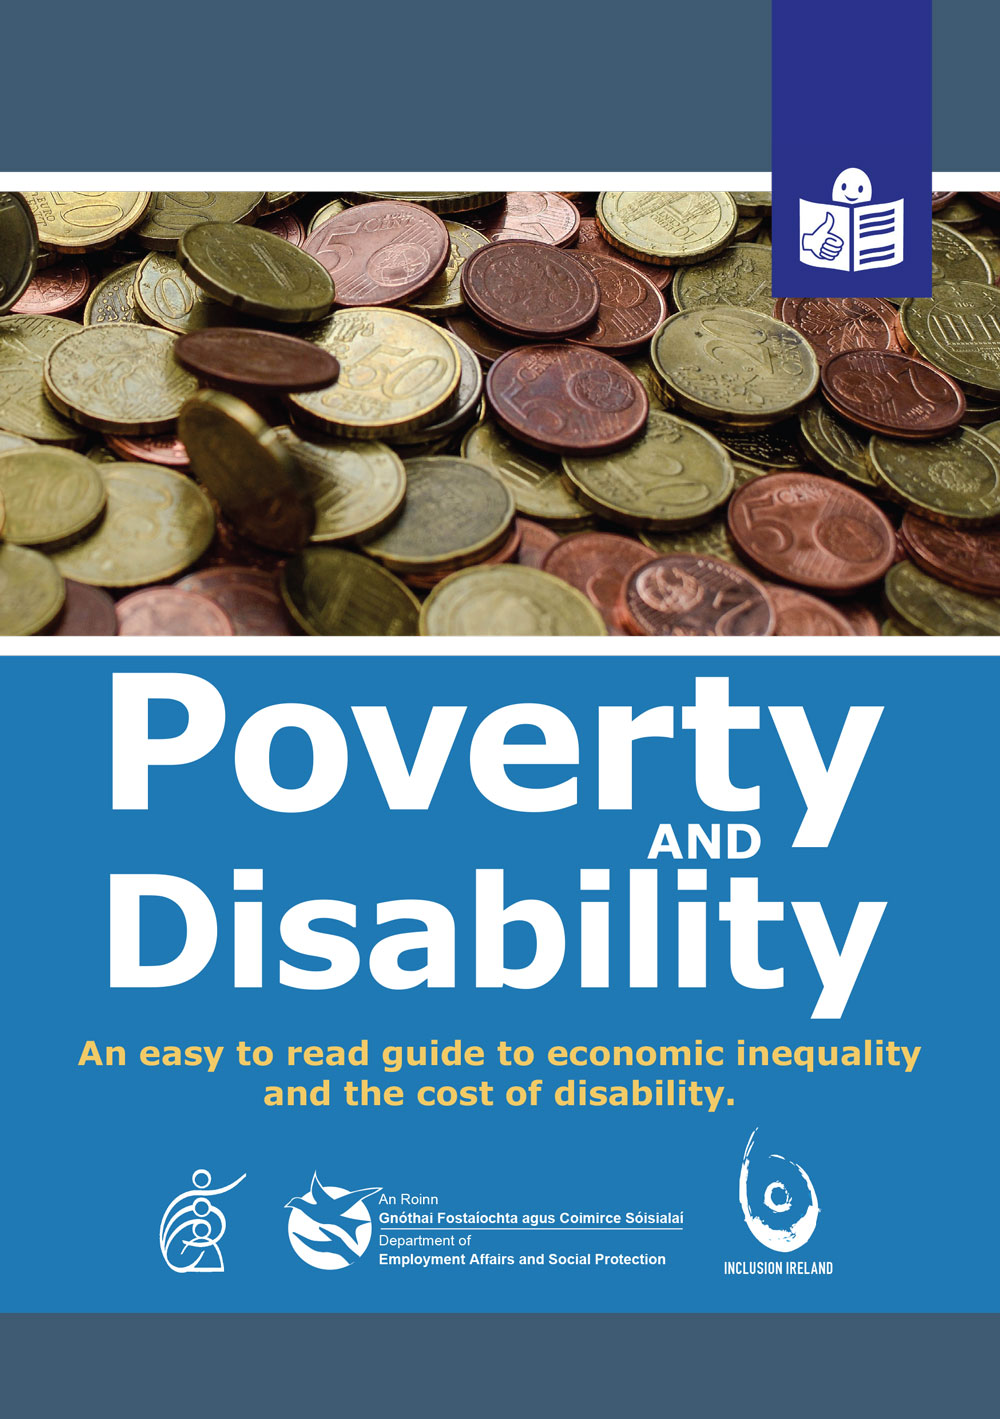 Poverty and Disability – An easy to read guide to economic inequality and the cost of disability.